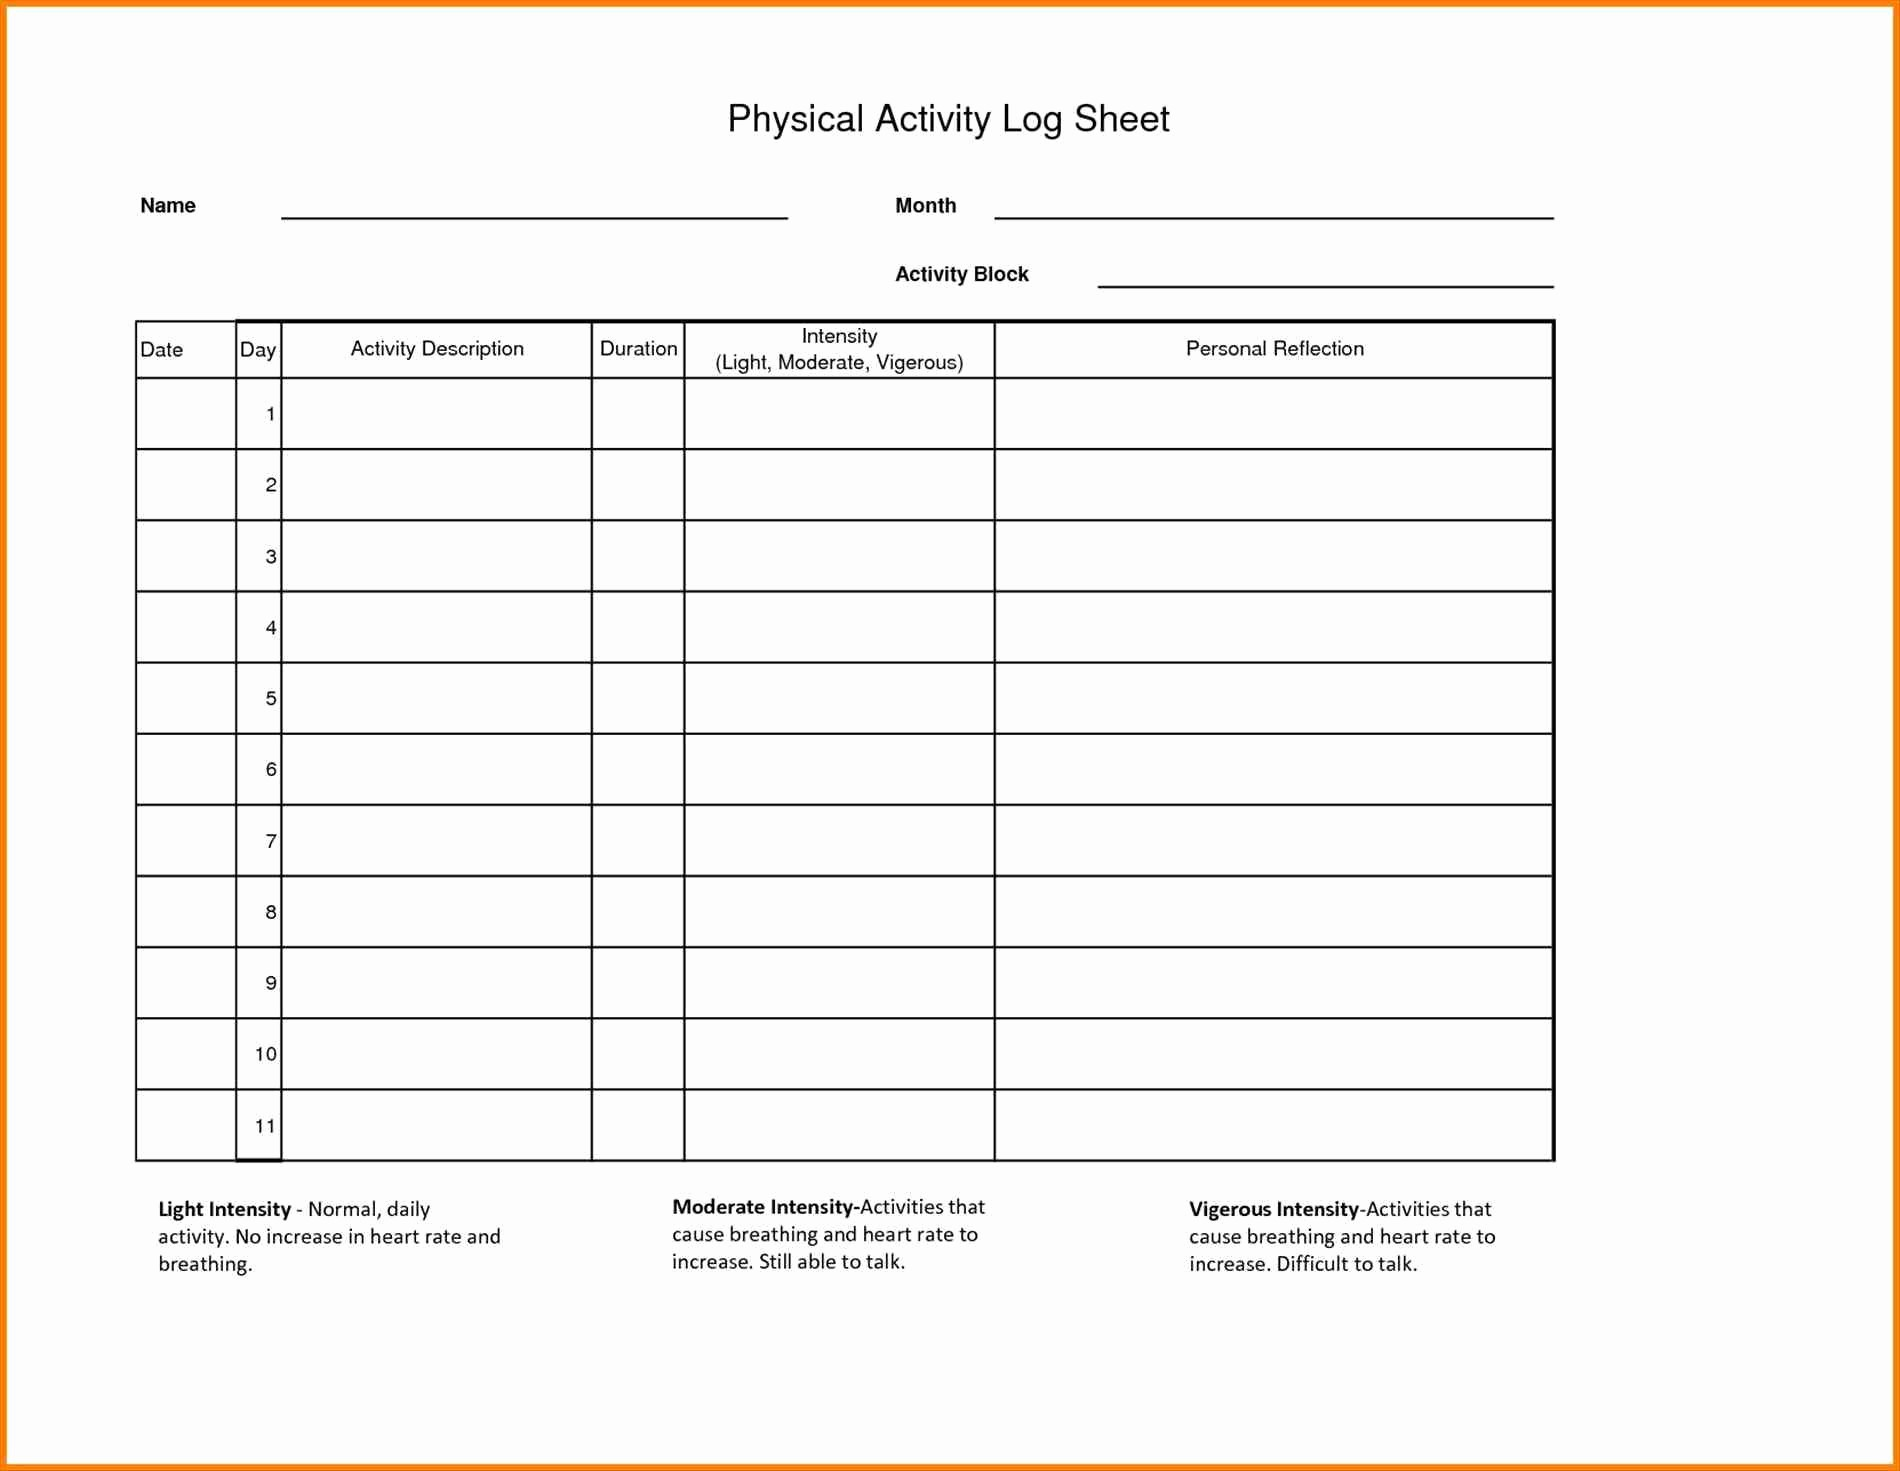 Physical Inventory Count Sheet Template Best Of Physical Inventory Log Sheet Inventory Count Sheet – Tmplts